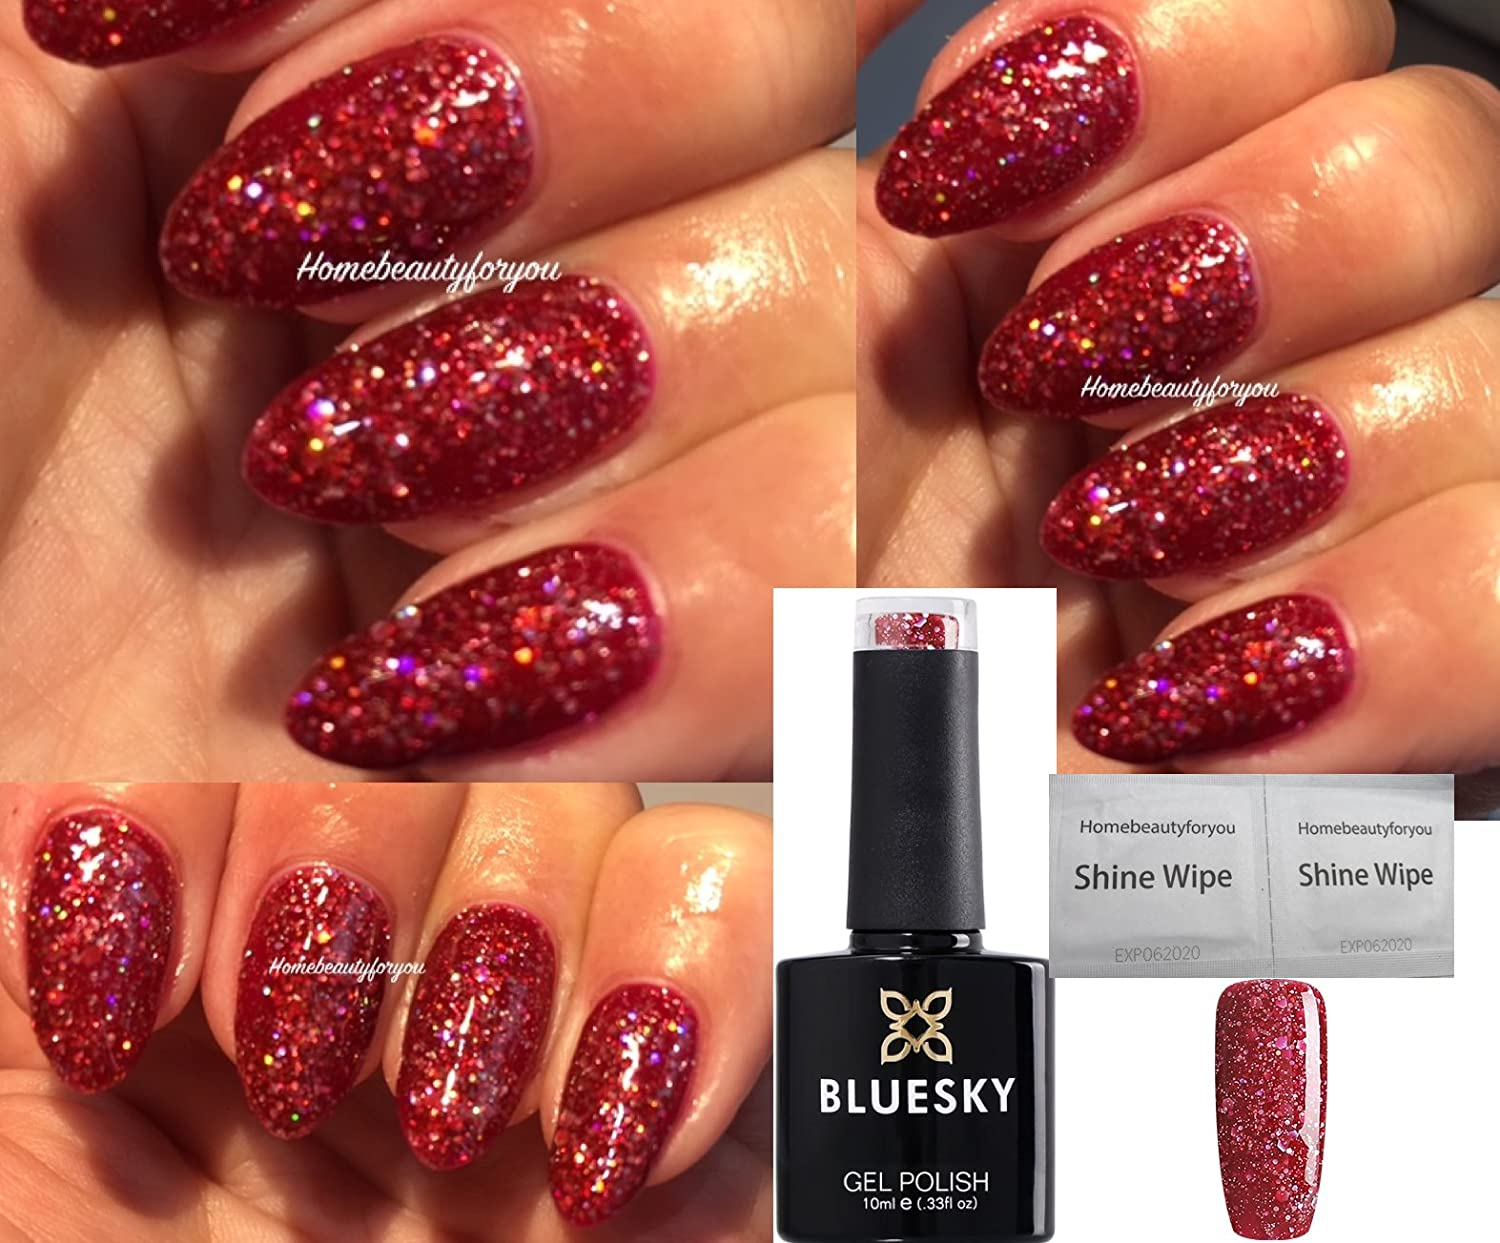 Bluesky BLZ12 Red Multi Glitter Sparkle Christmas Nail Gel Polish UV LED Soak Off 10ml PLUS 2 Homebeautyforyou Shine Wipes LTD